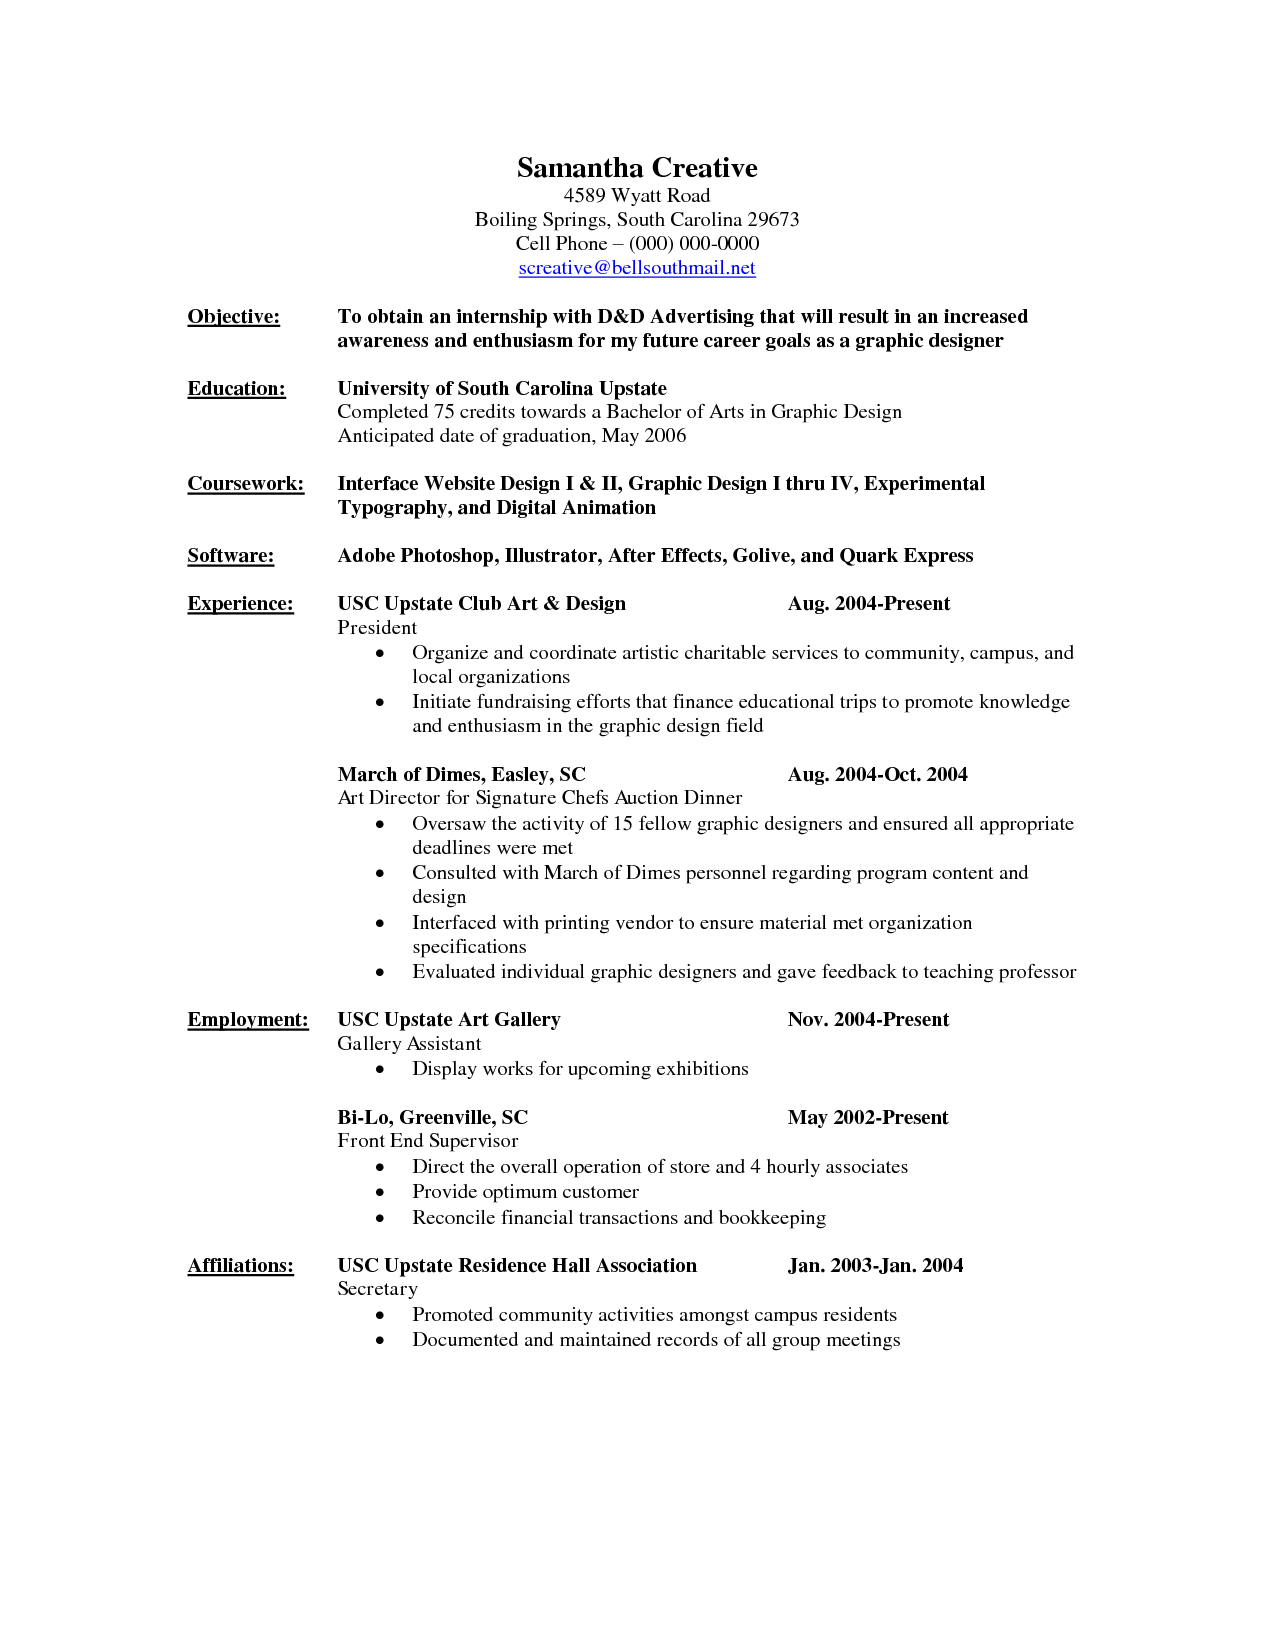 Impressive resume format httpmegagiper20170427 impressive resume format httpmegagiper20170427impressiveresumeformat yelopaper Image collections